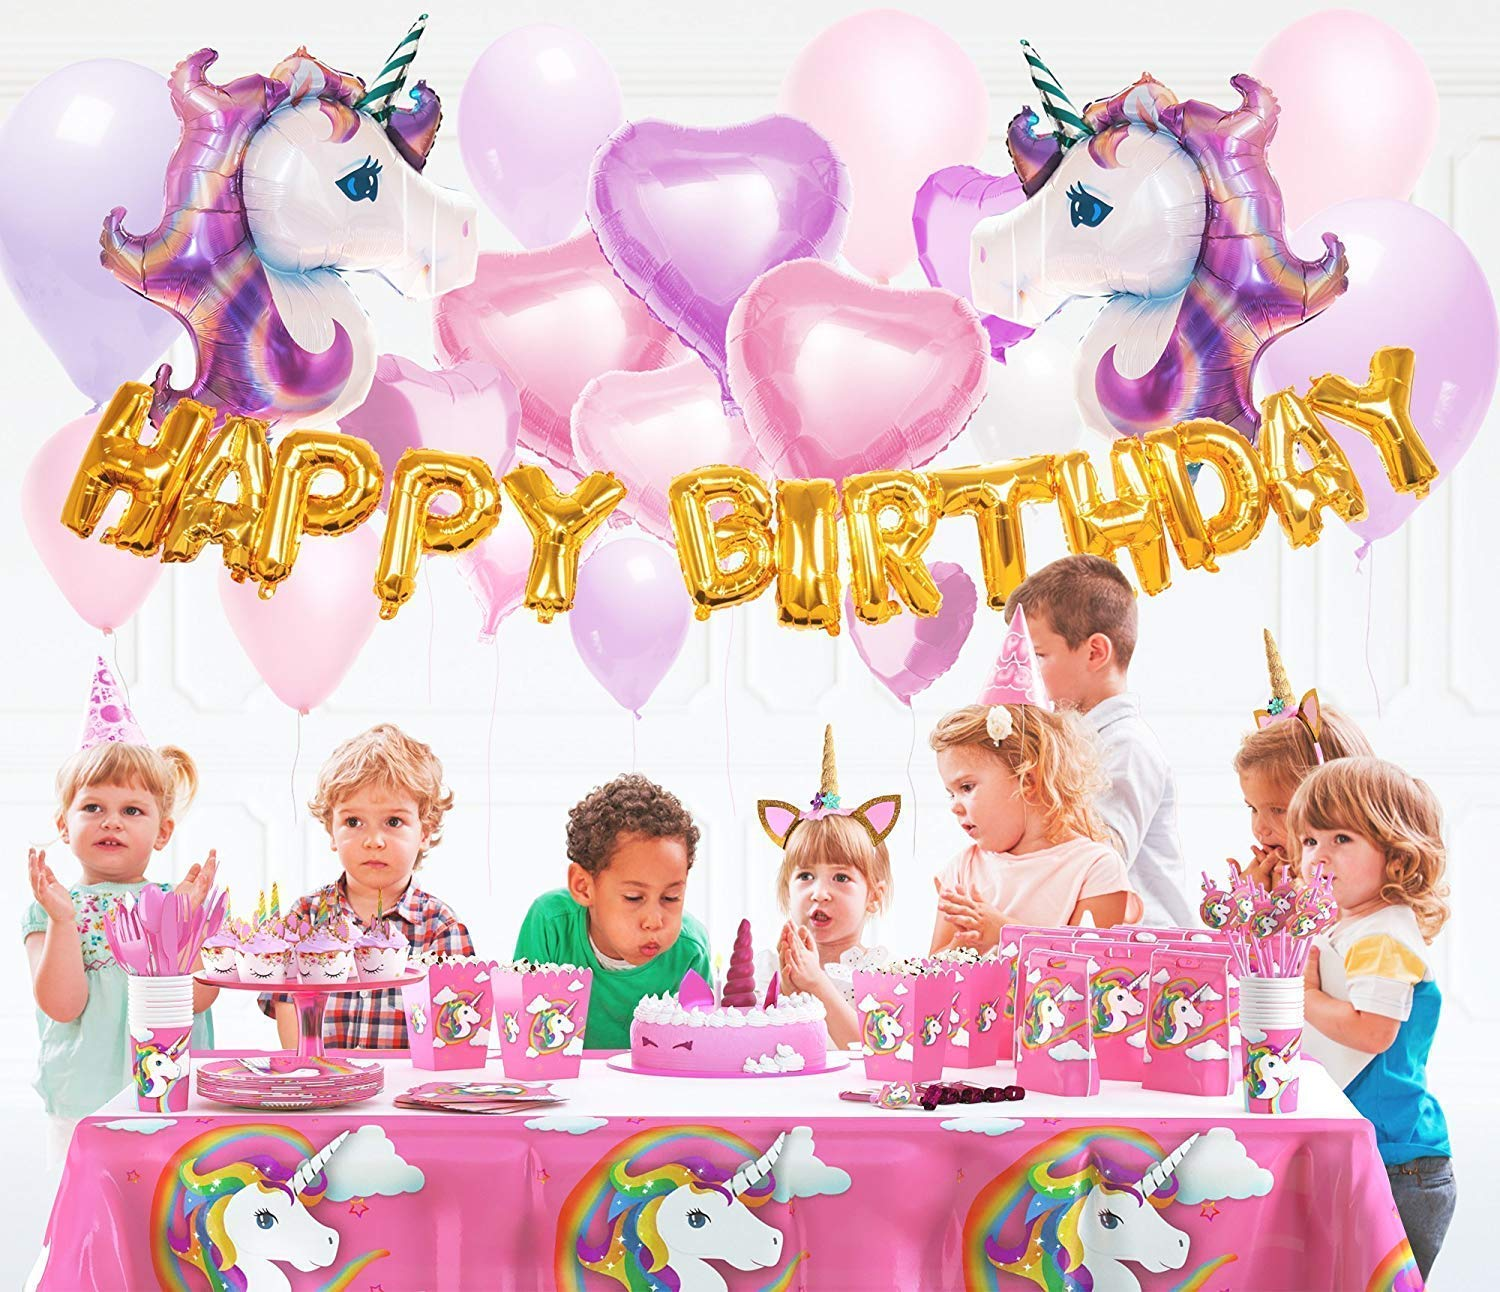 Unicorn Party Supplies- Cake Topper + Cupcake Wrappers | Headband | Party Plates Set for Kids | 32 Balloons | Tattoos… 9